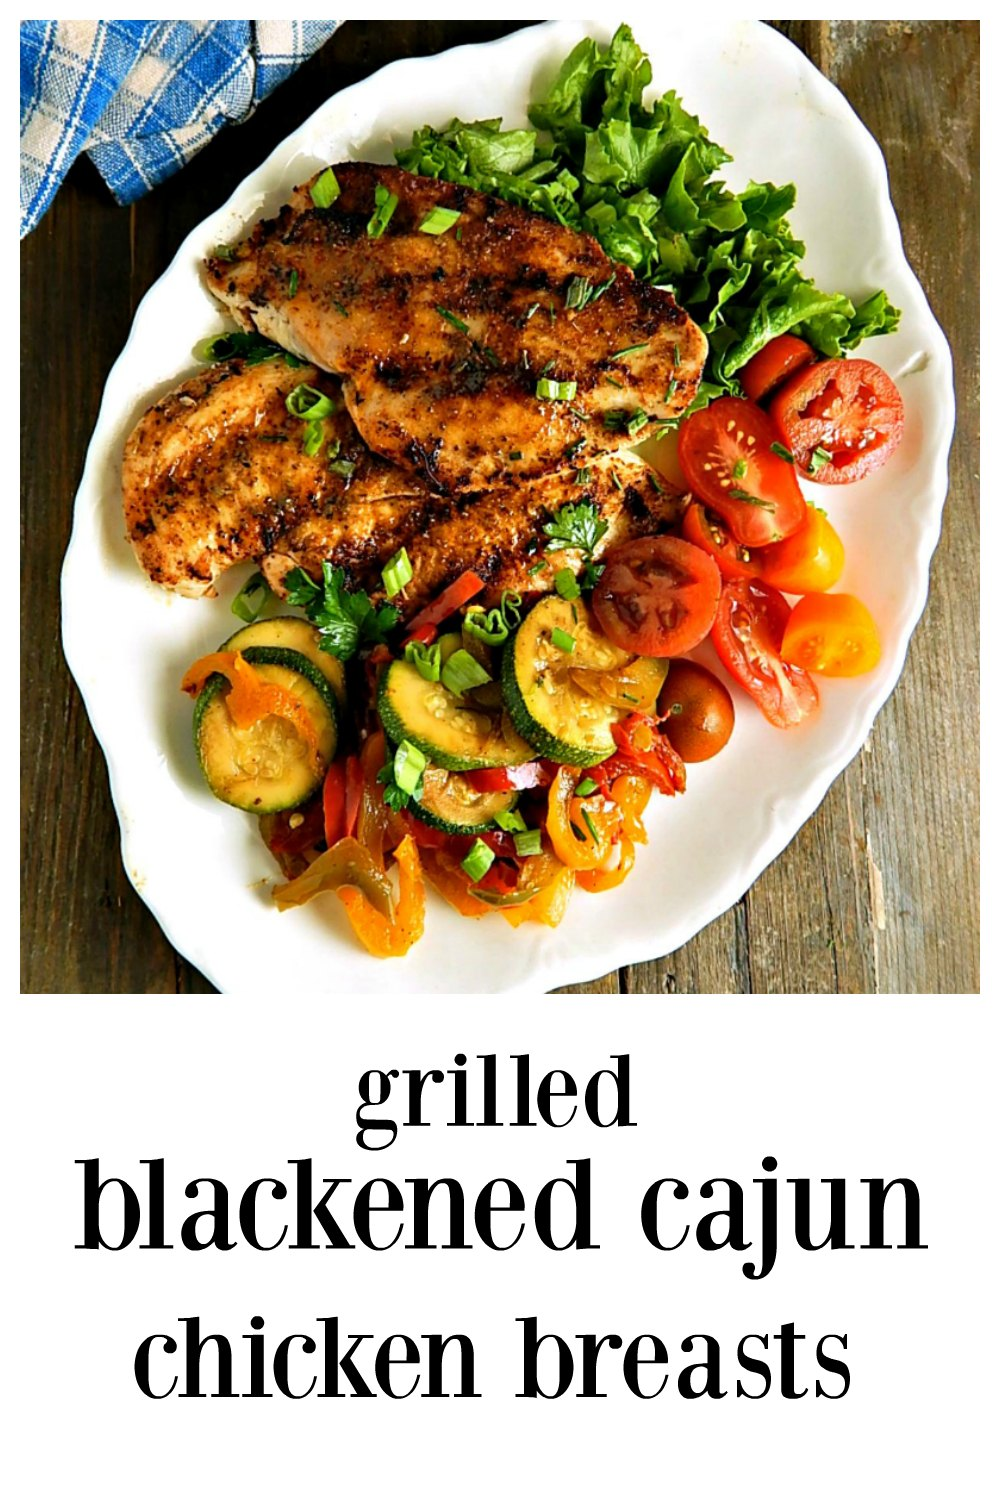 So fast, so easy, so delish & so versatile - you're going to love Grilled Blackened Cajun Chicken Breasts. Easy saute instructions, too, for when grilling isn't an option. #CajunChicken #BlackenedChicken #GrilledChicken #GrilledCajunChicken #GrilledBlackenedChicken